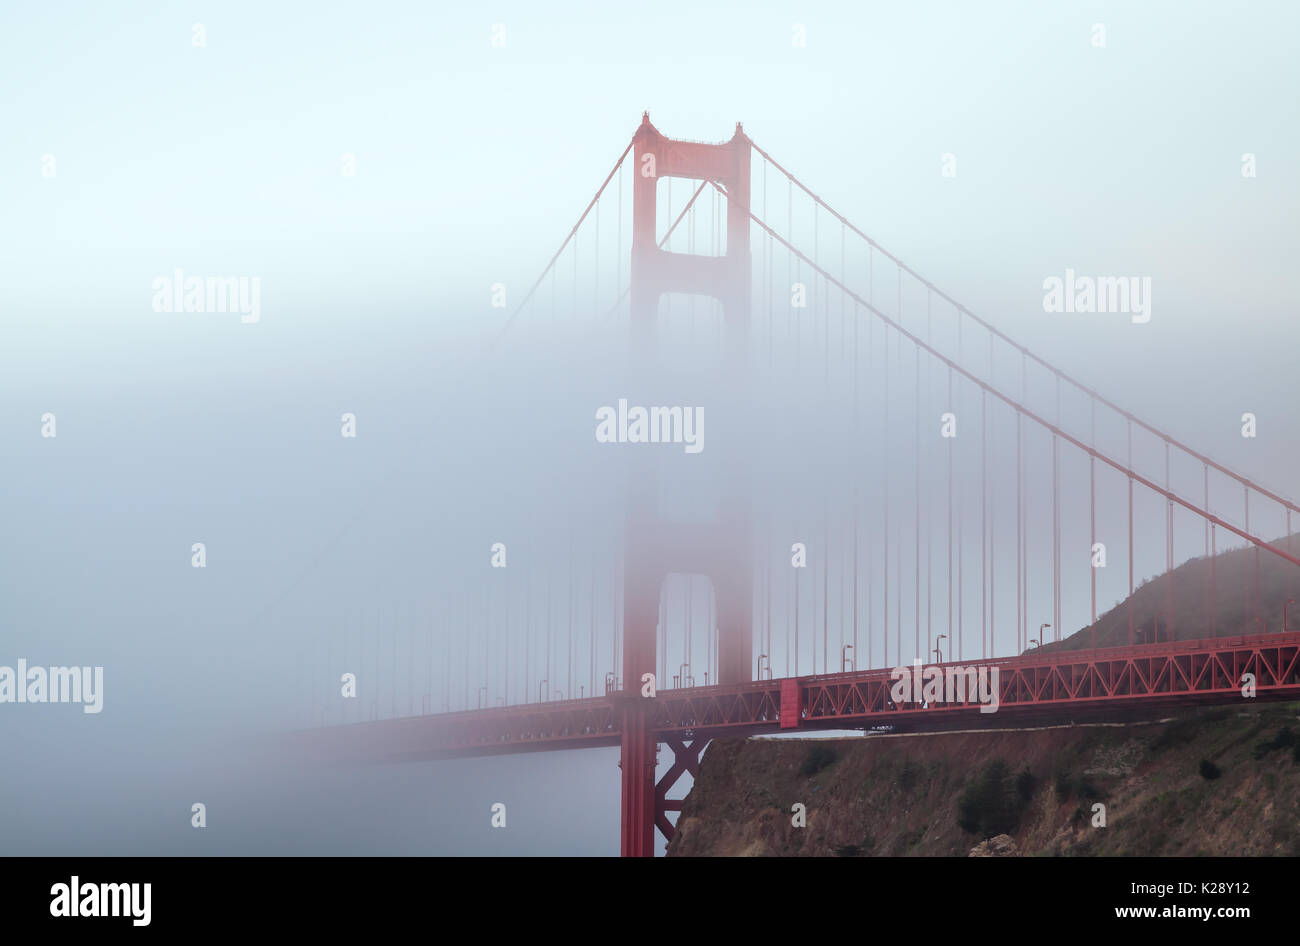 Lower fog covered part of the Golden Gate Bridge, San Francisco, California, USA - Stock Image